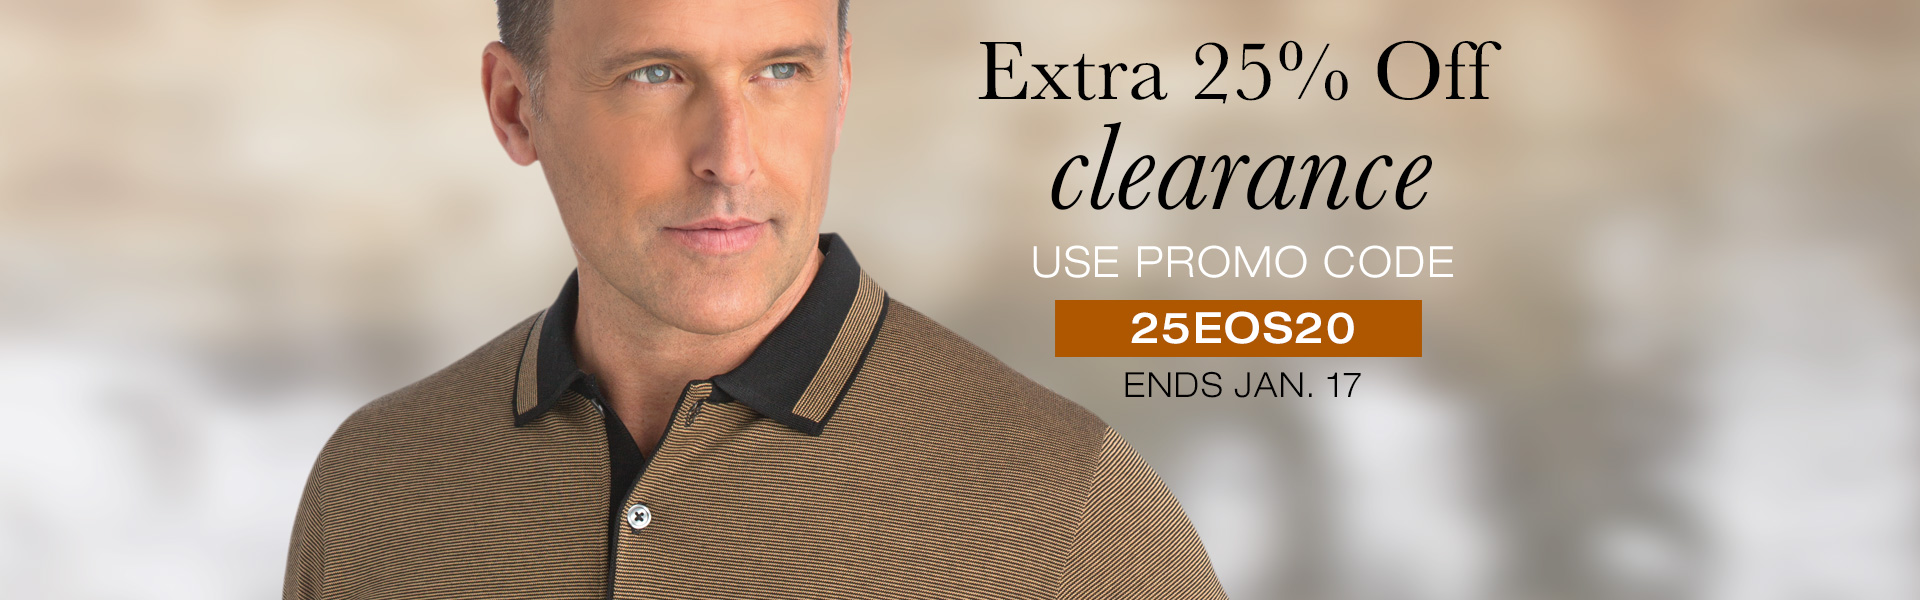 Shop Extra Savings in Clearance